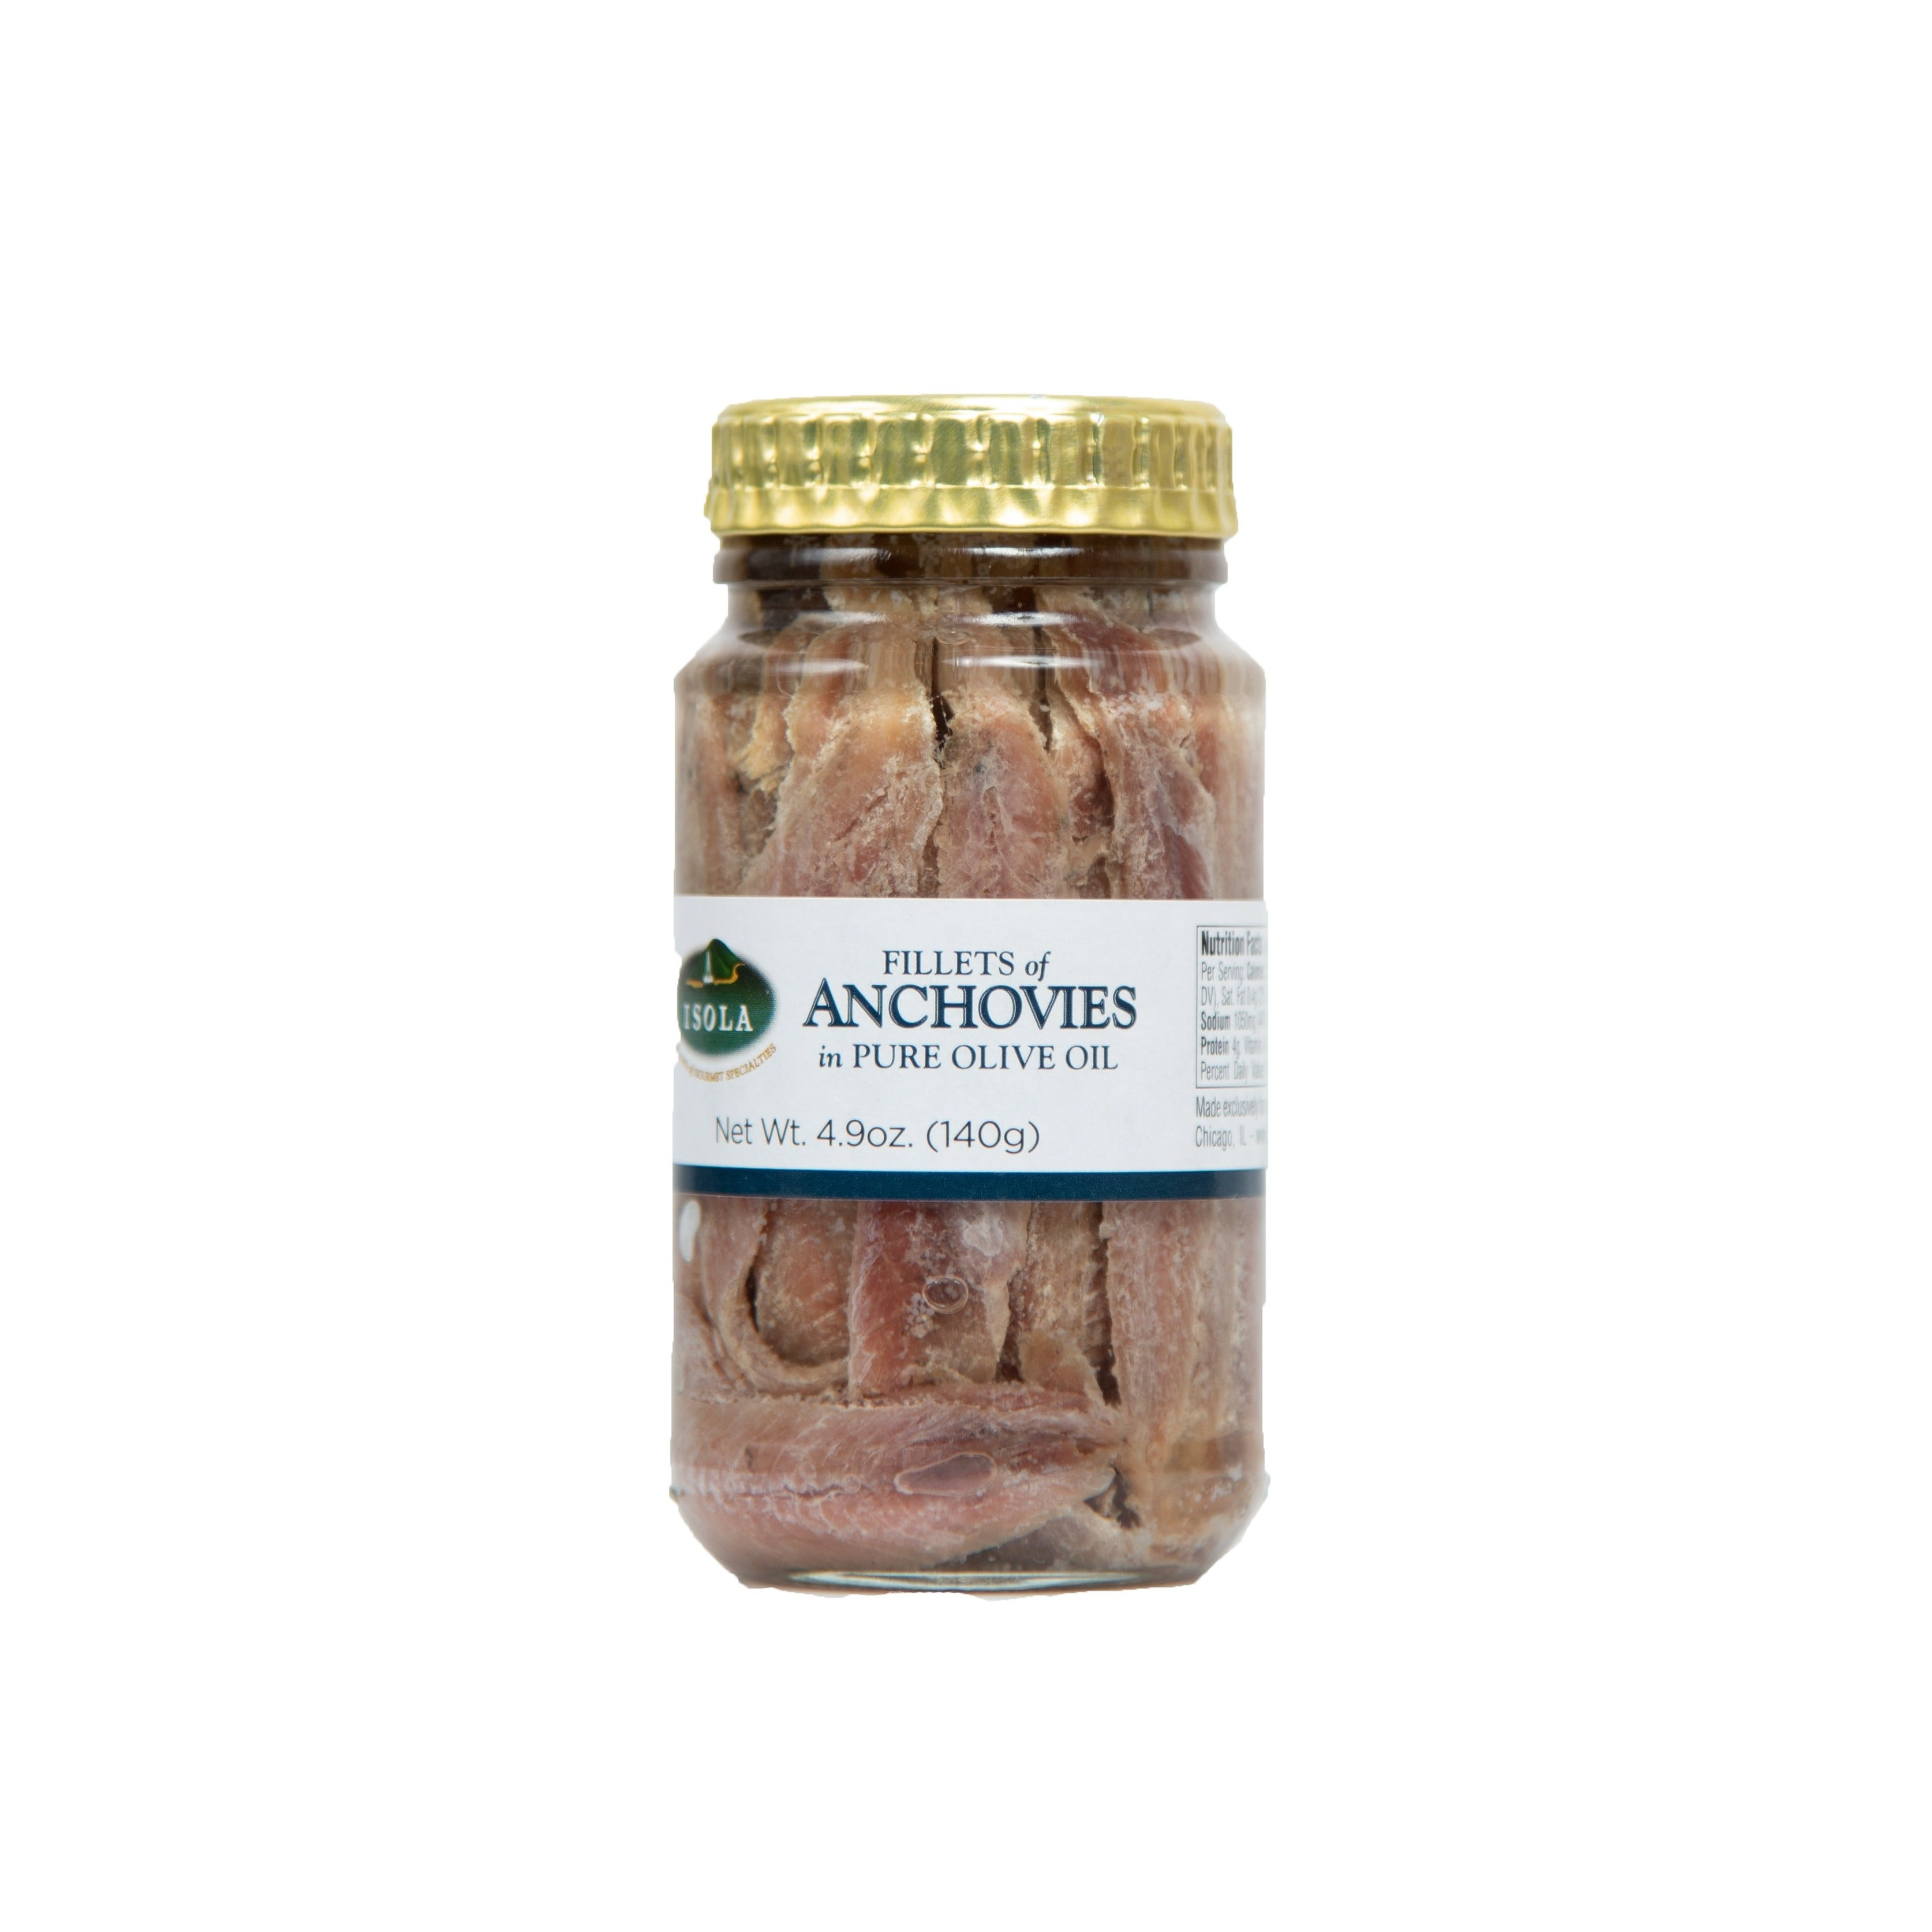 Fillets of Anchovies in Pure Olive Oil